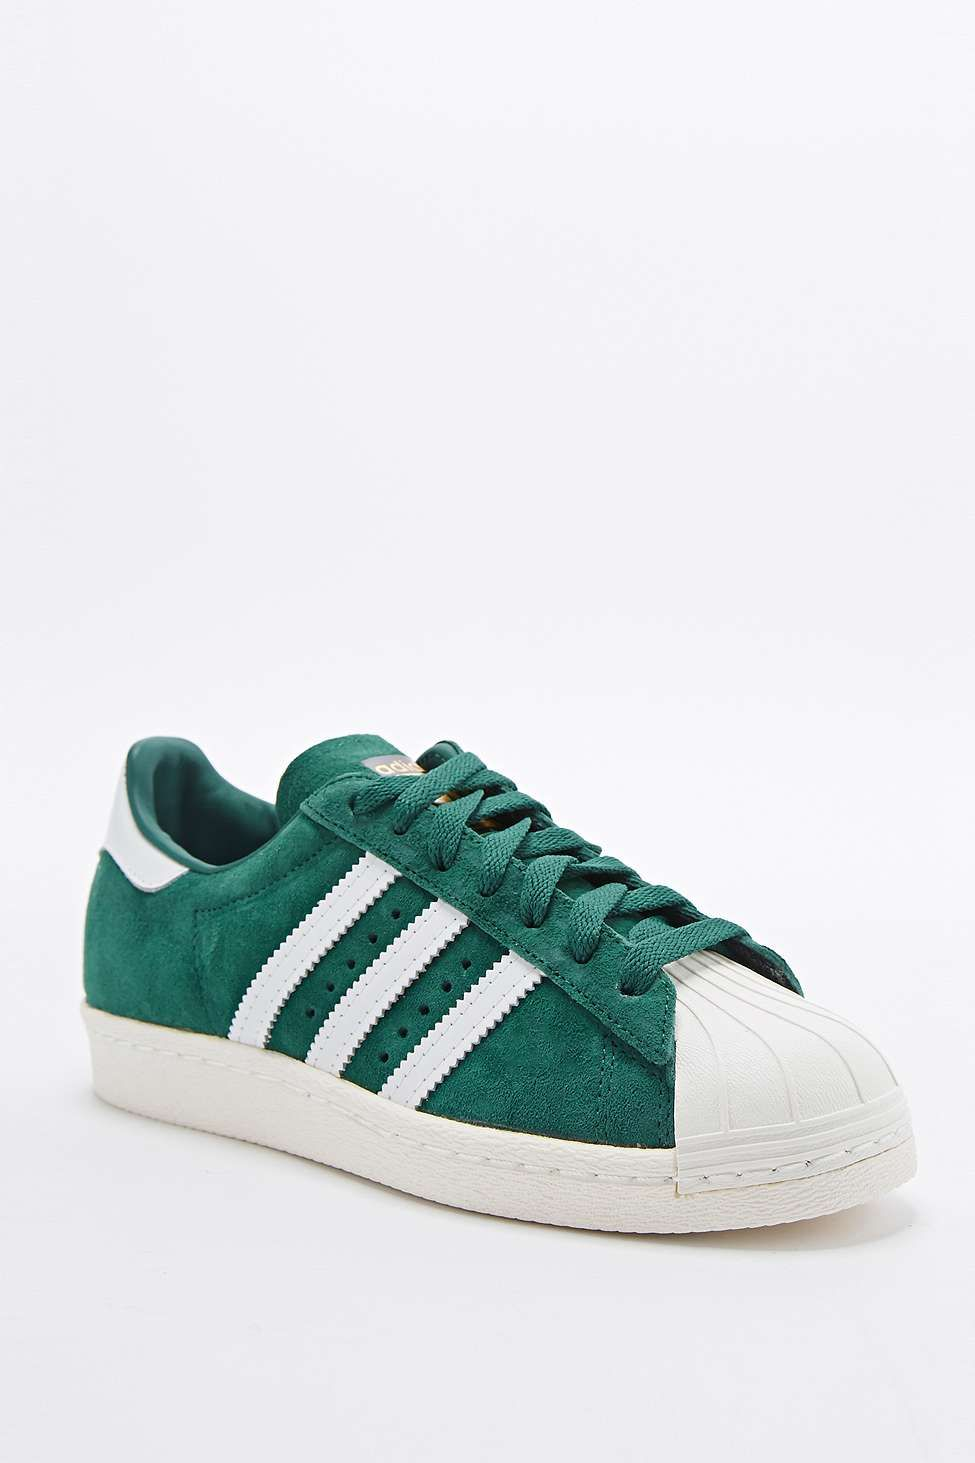 adidas Originals Baskets Superstar s Delux en daim vert | | | Techniques Modernes